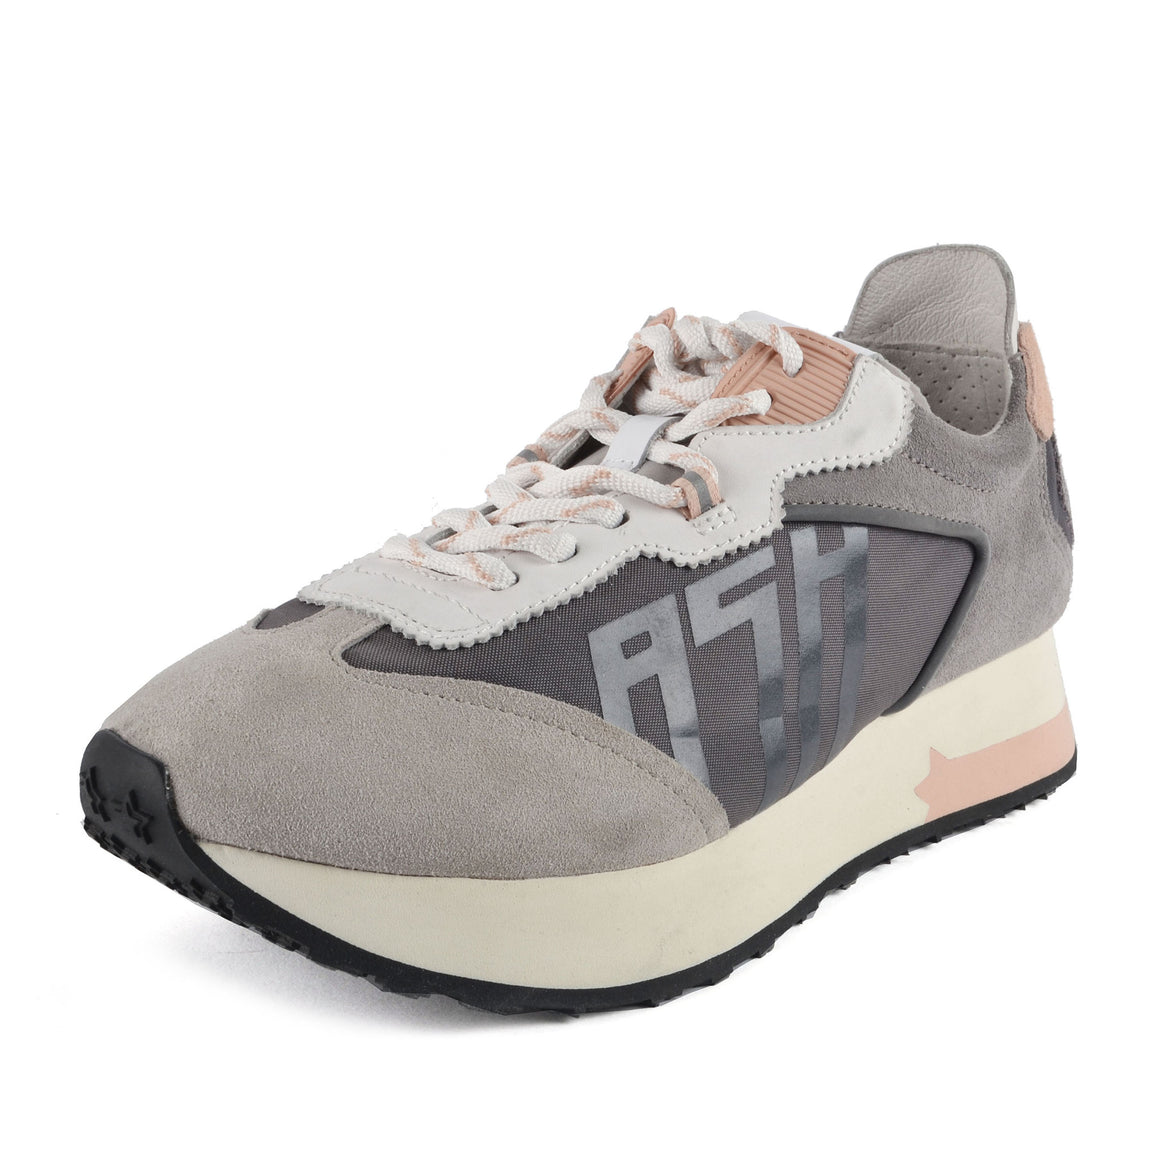 Tiger Trainers for Women in Grey/Nude